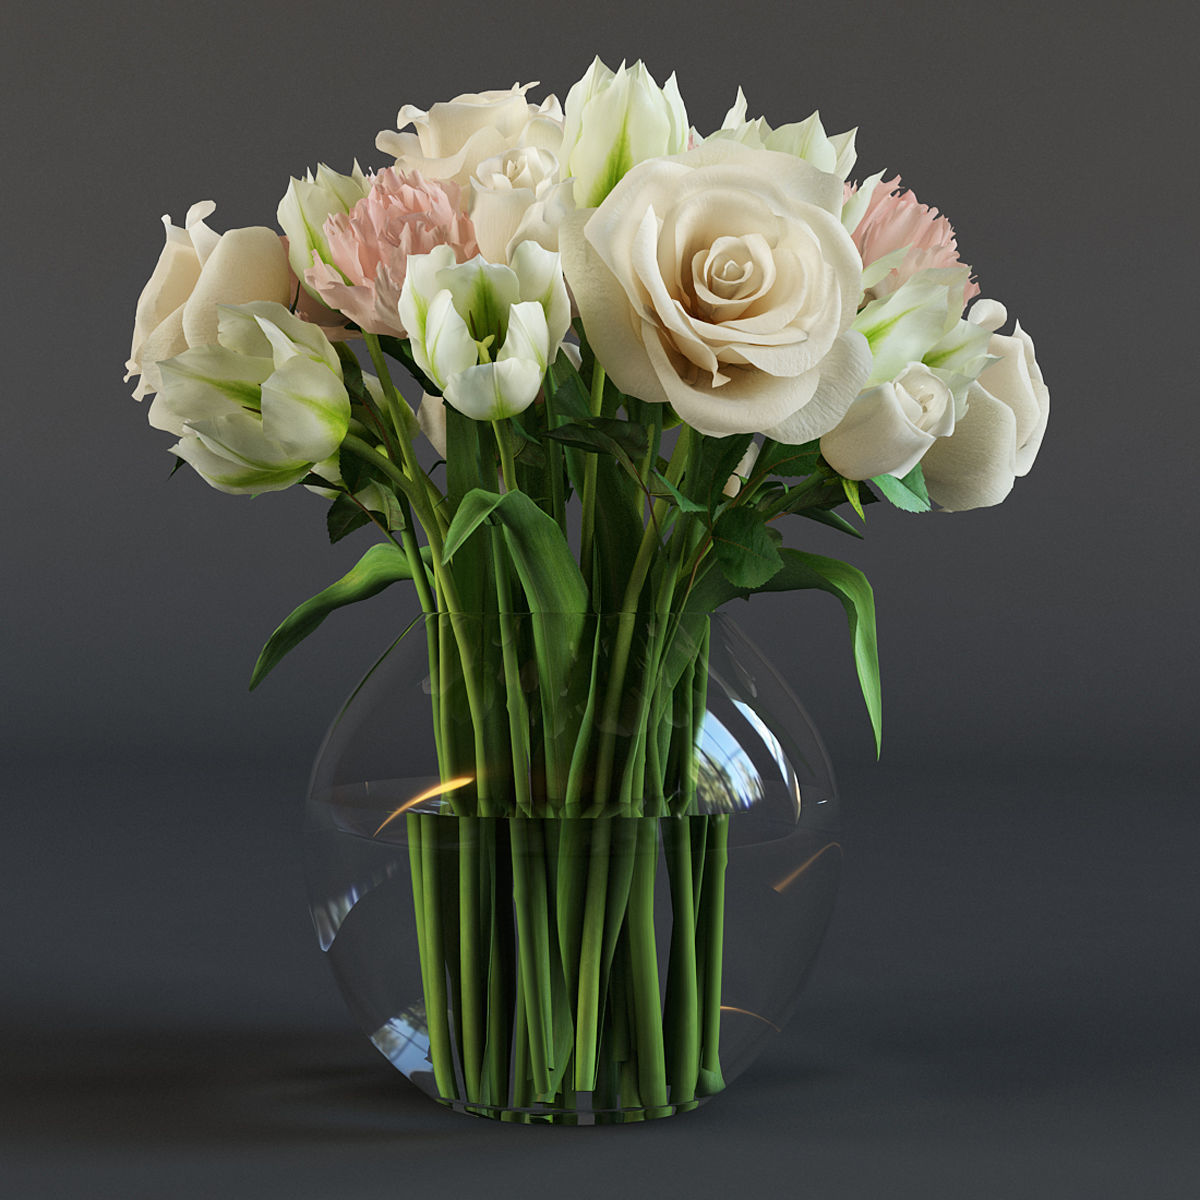 Bouquet of flowers 3D model | CGTrader